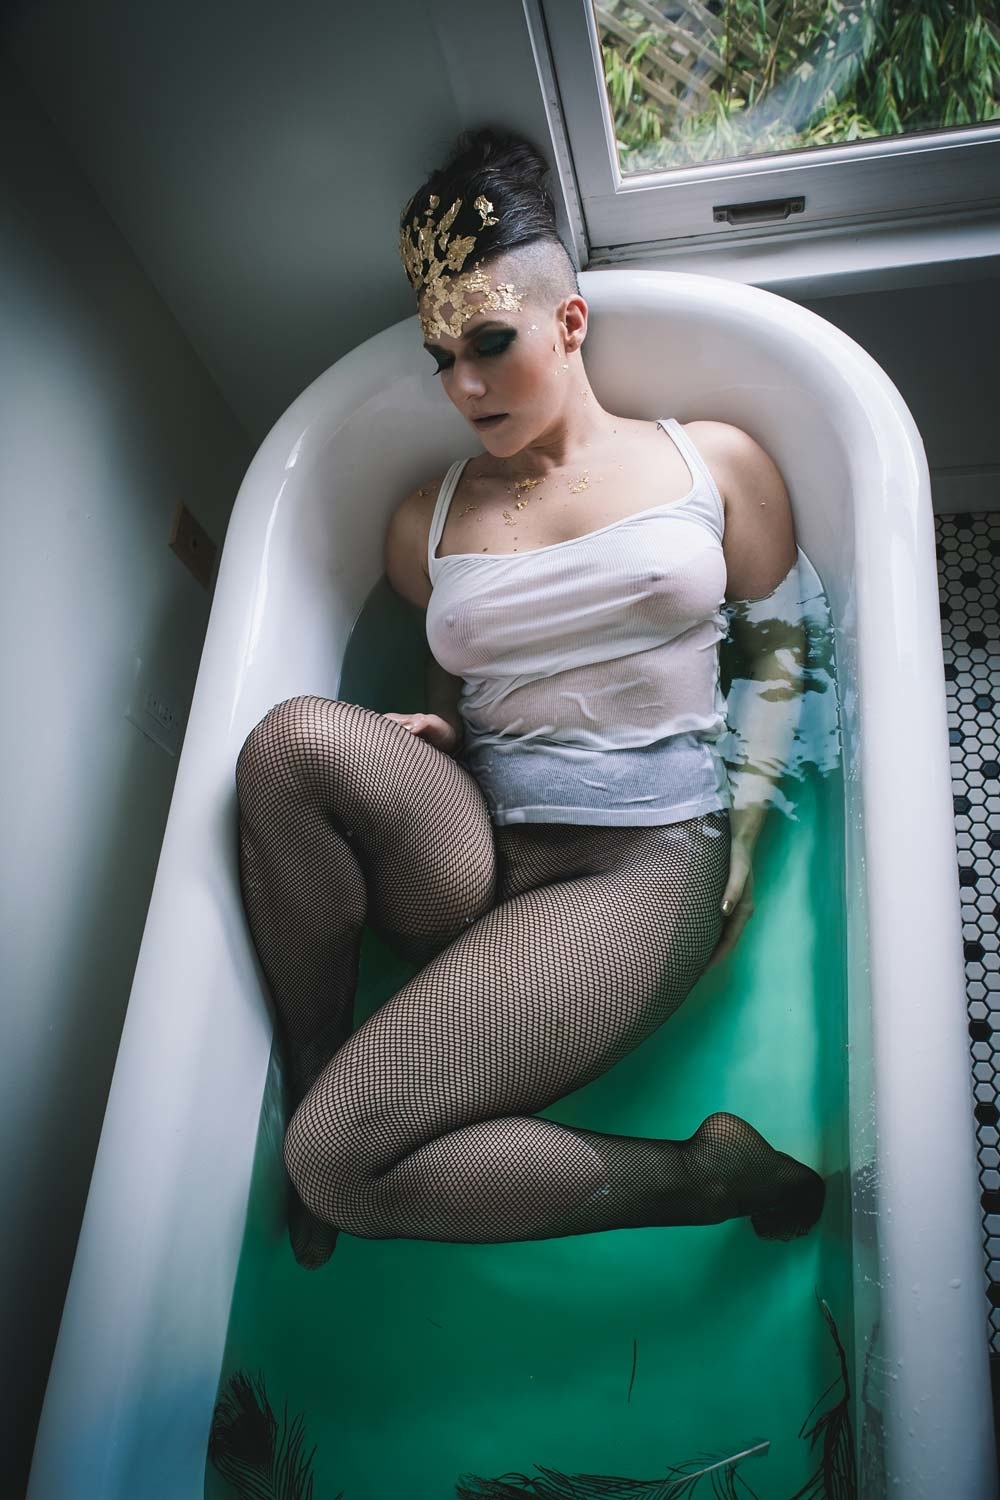 Edgy boudoir photography, vancouver editorial photographer, vancouver fashion editorial photography, bathtub boudoir photographer, claw foot tub